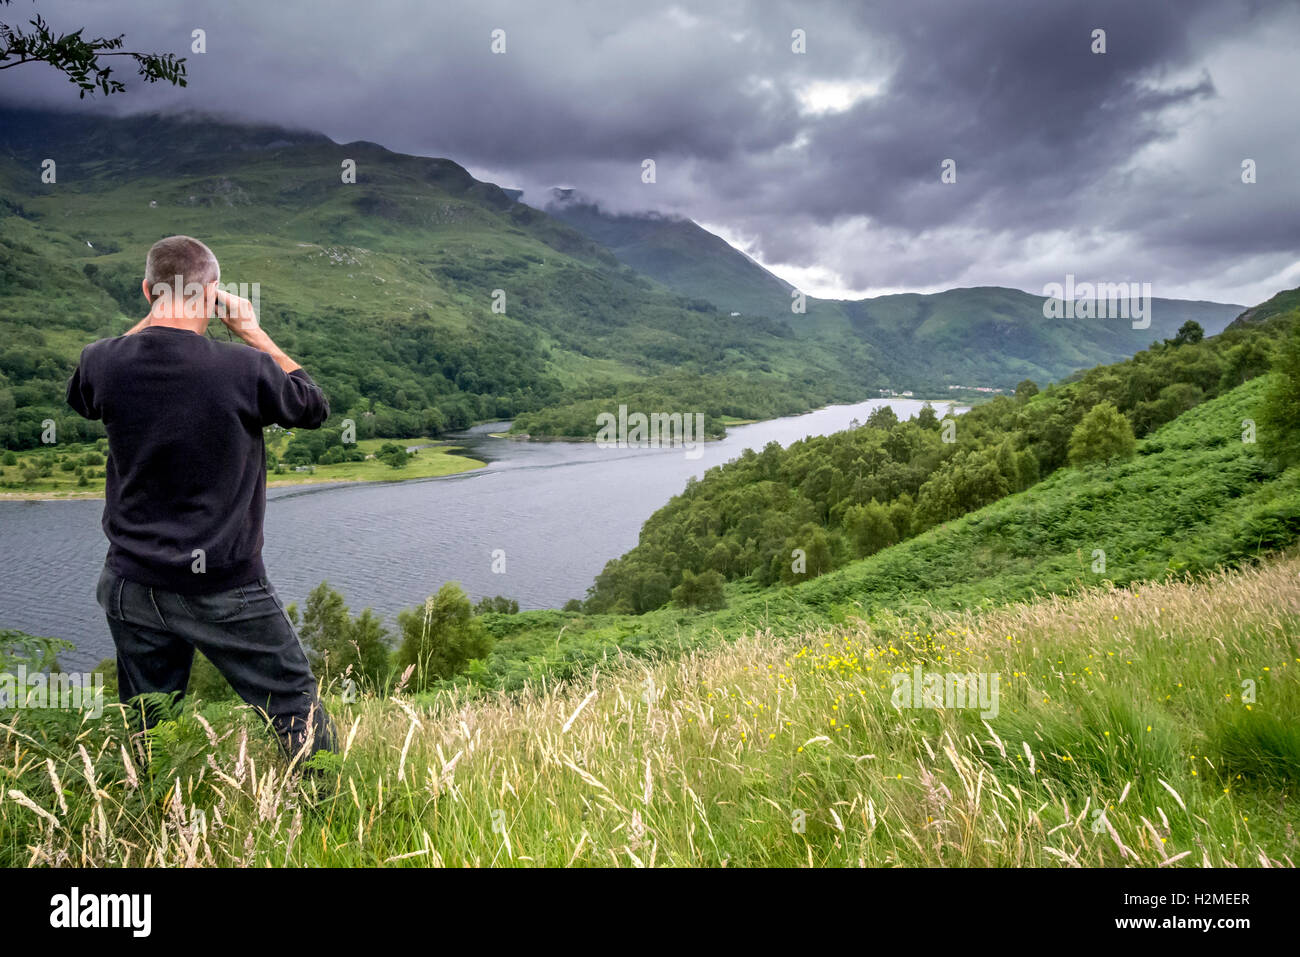 Views and outlooks in the Scottish Highlands - Stock Image